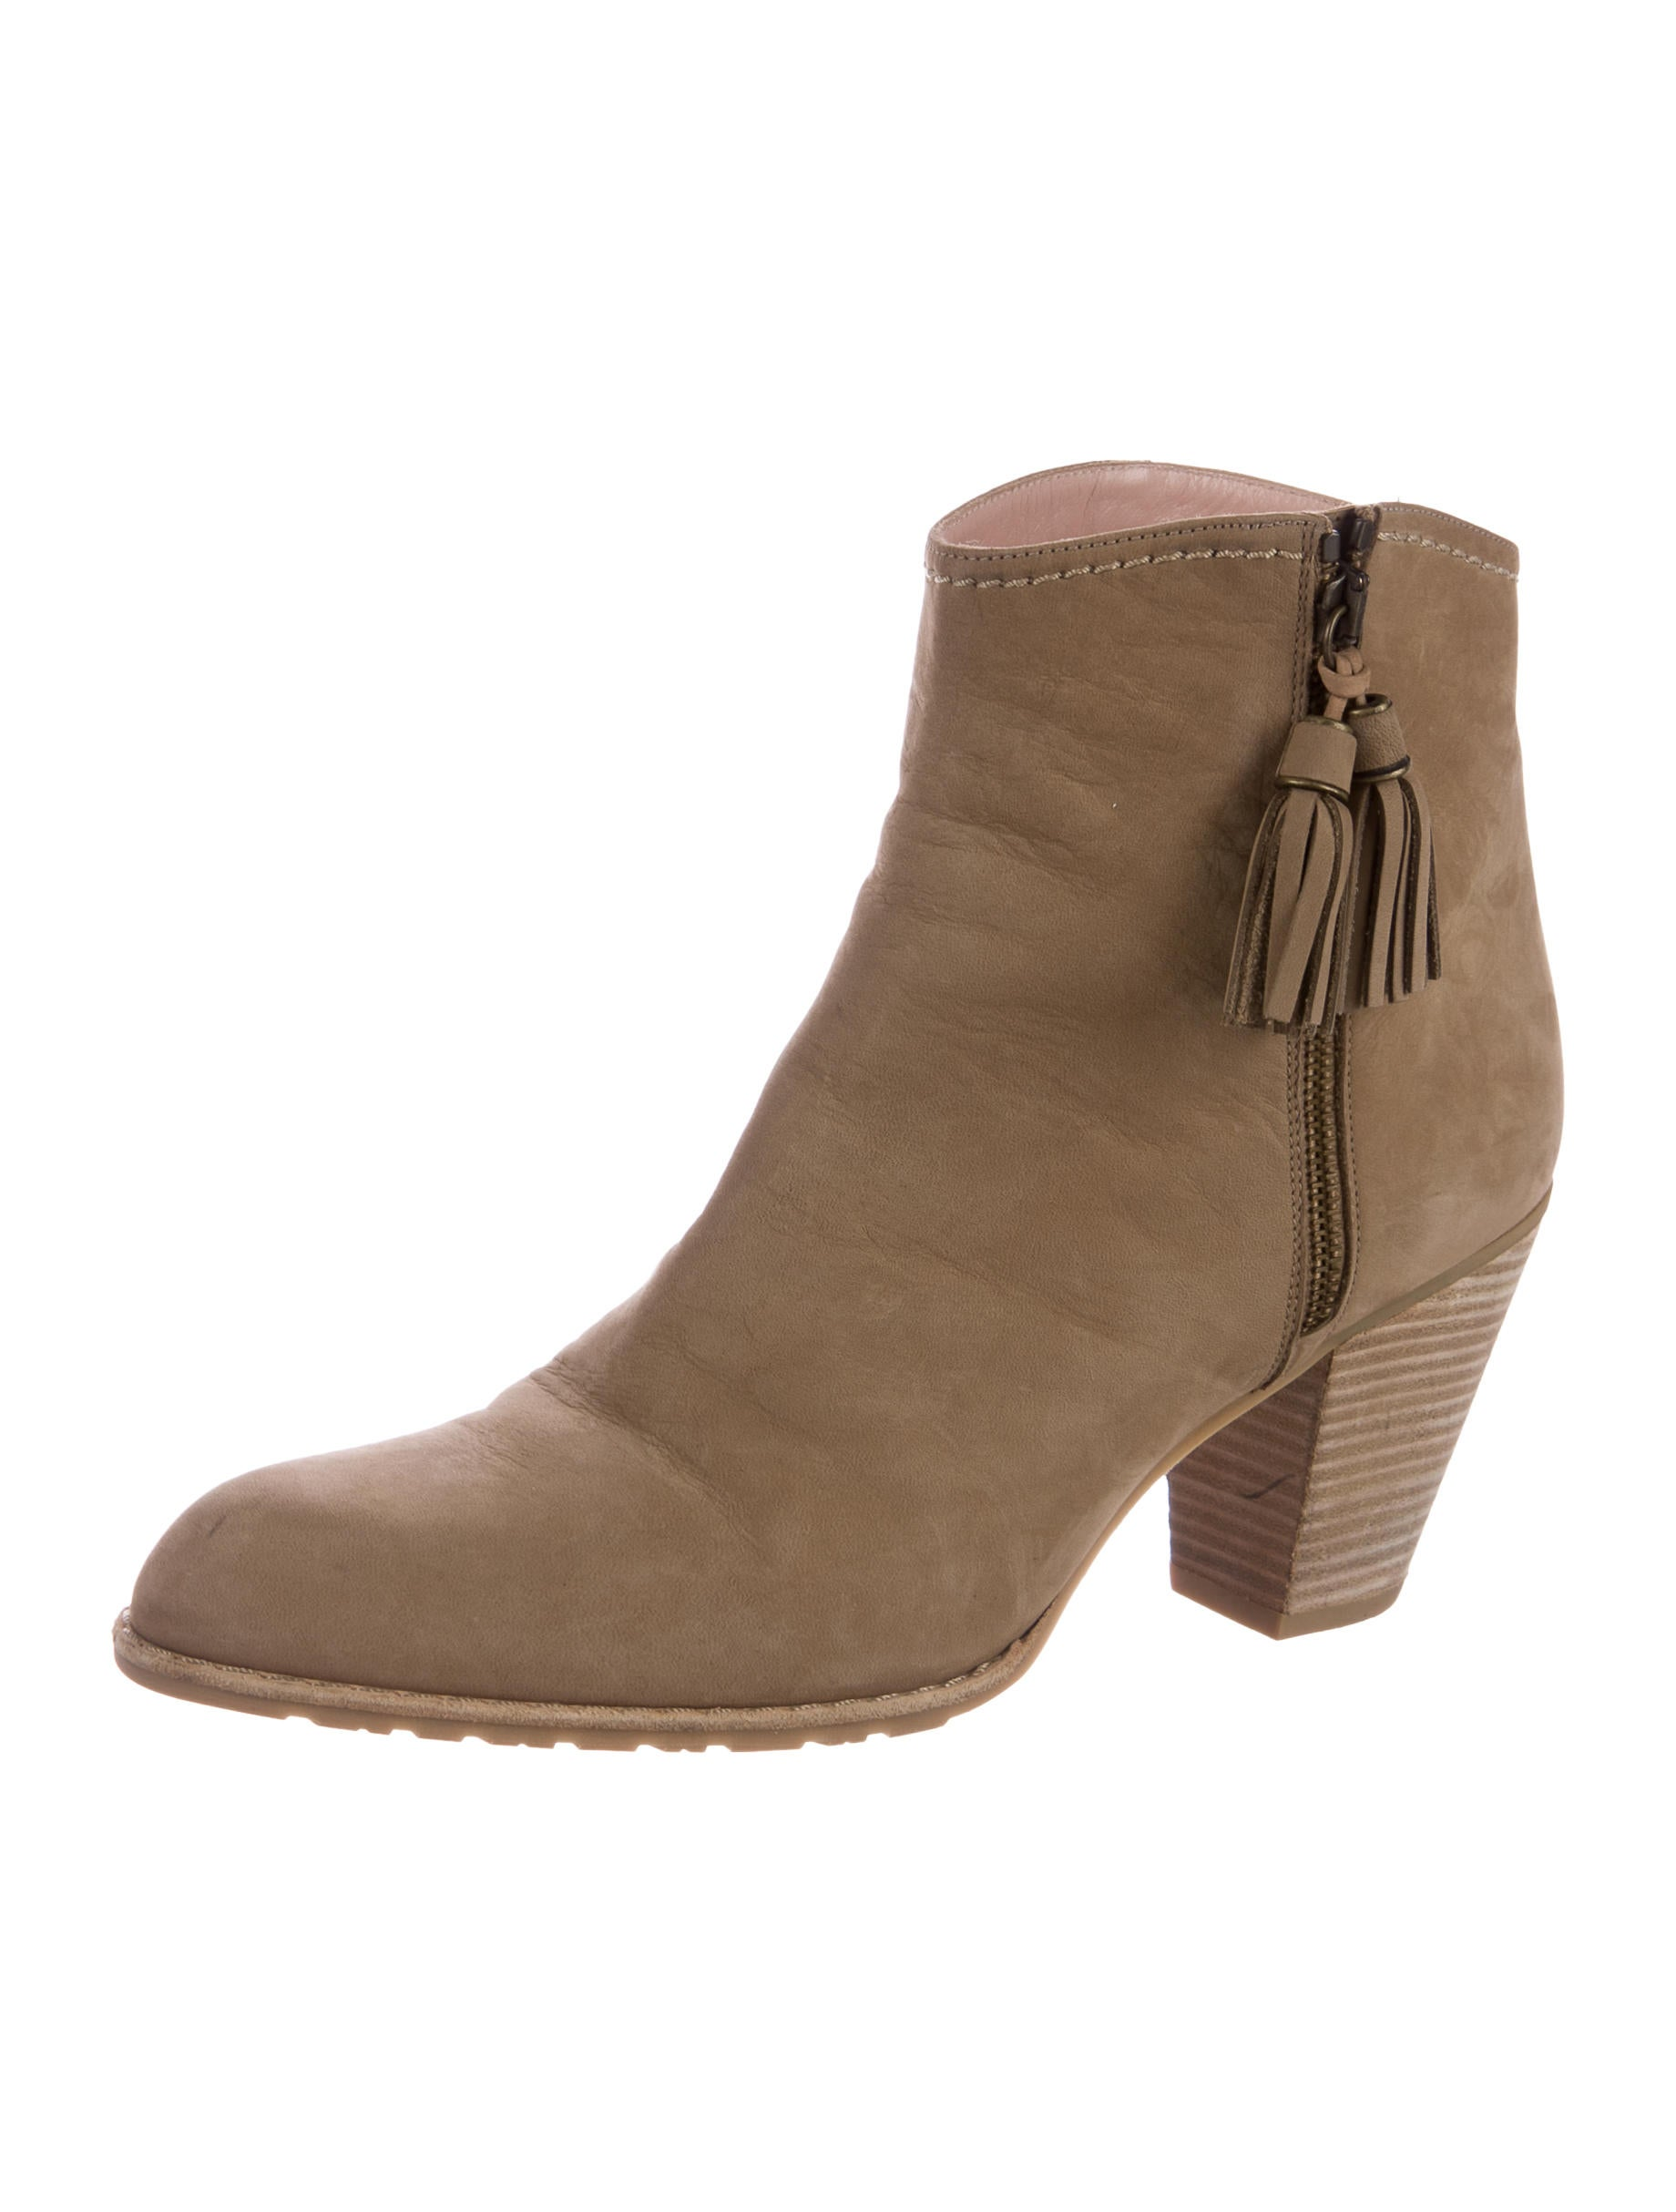 stuart weitzman suede semi pointed toe ankle boots shoes